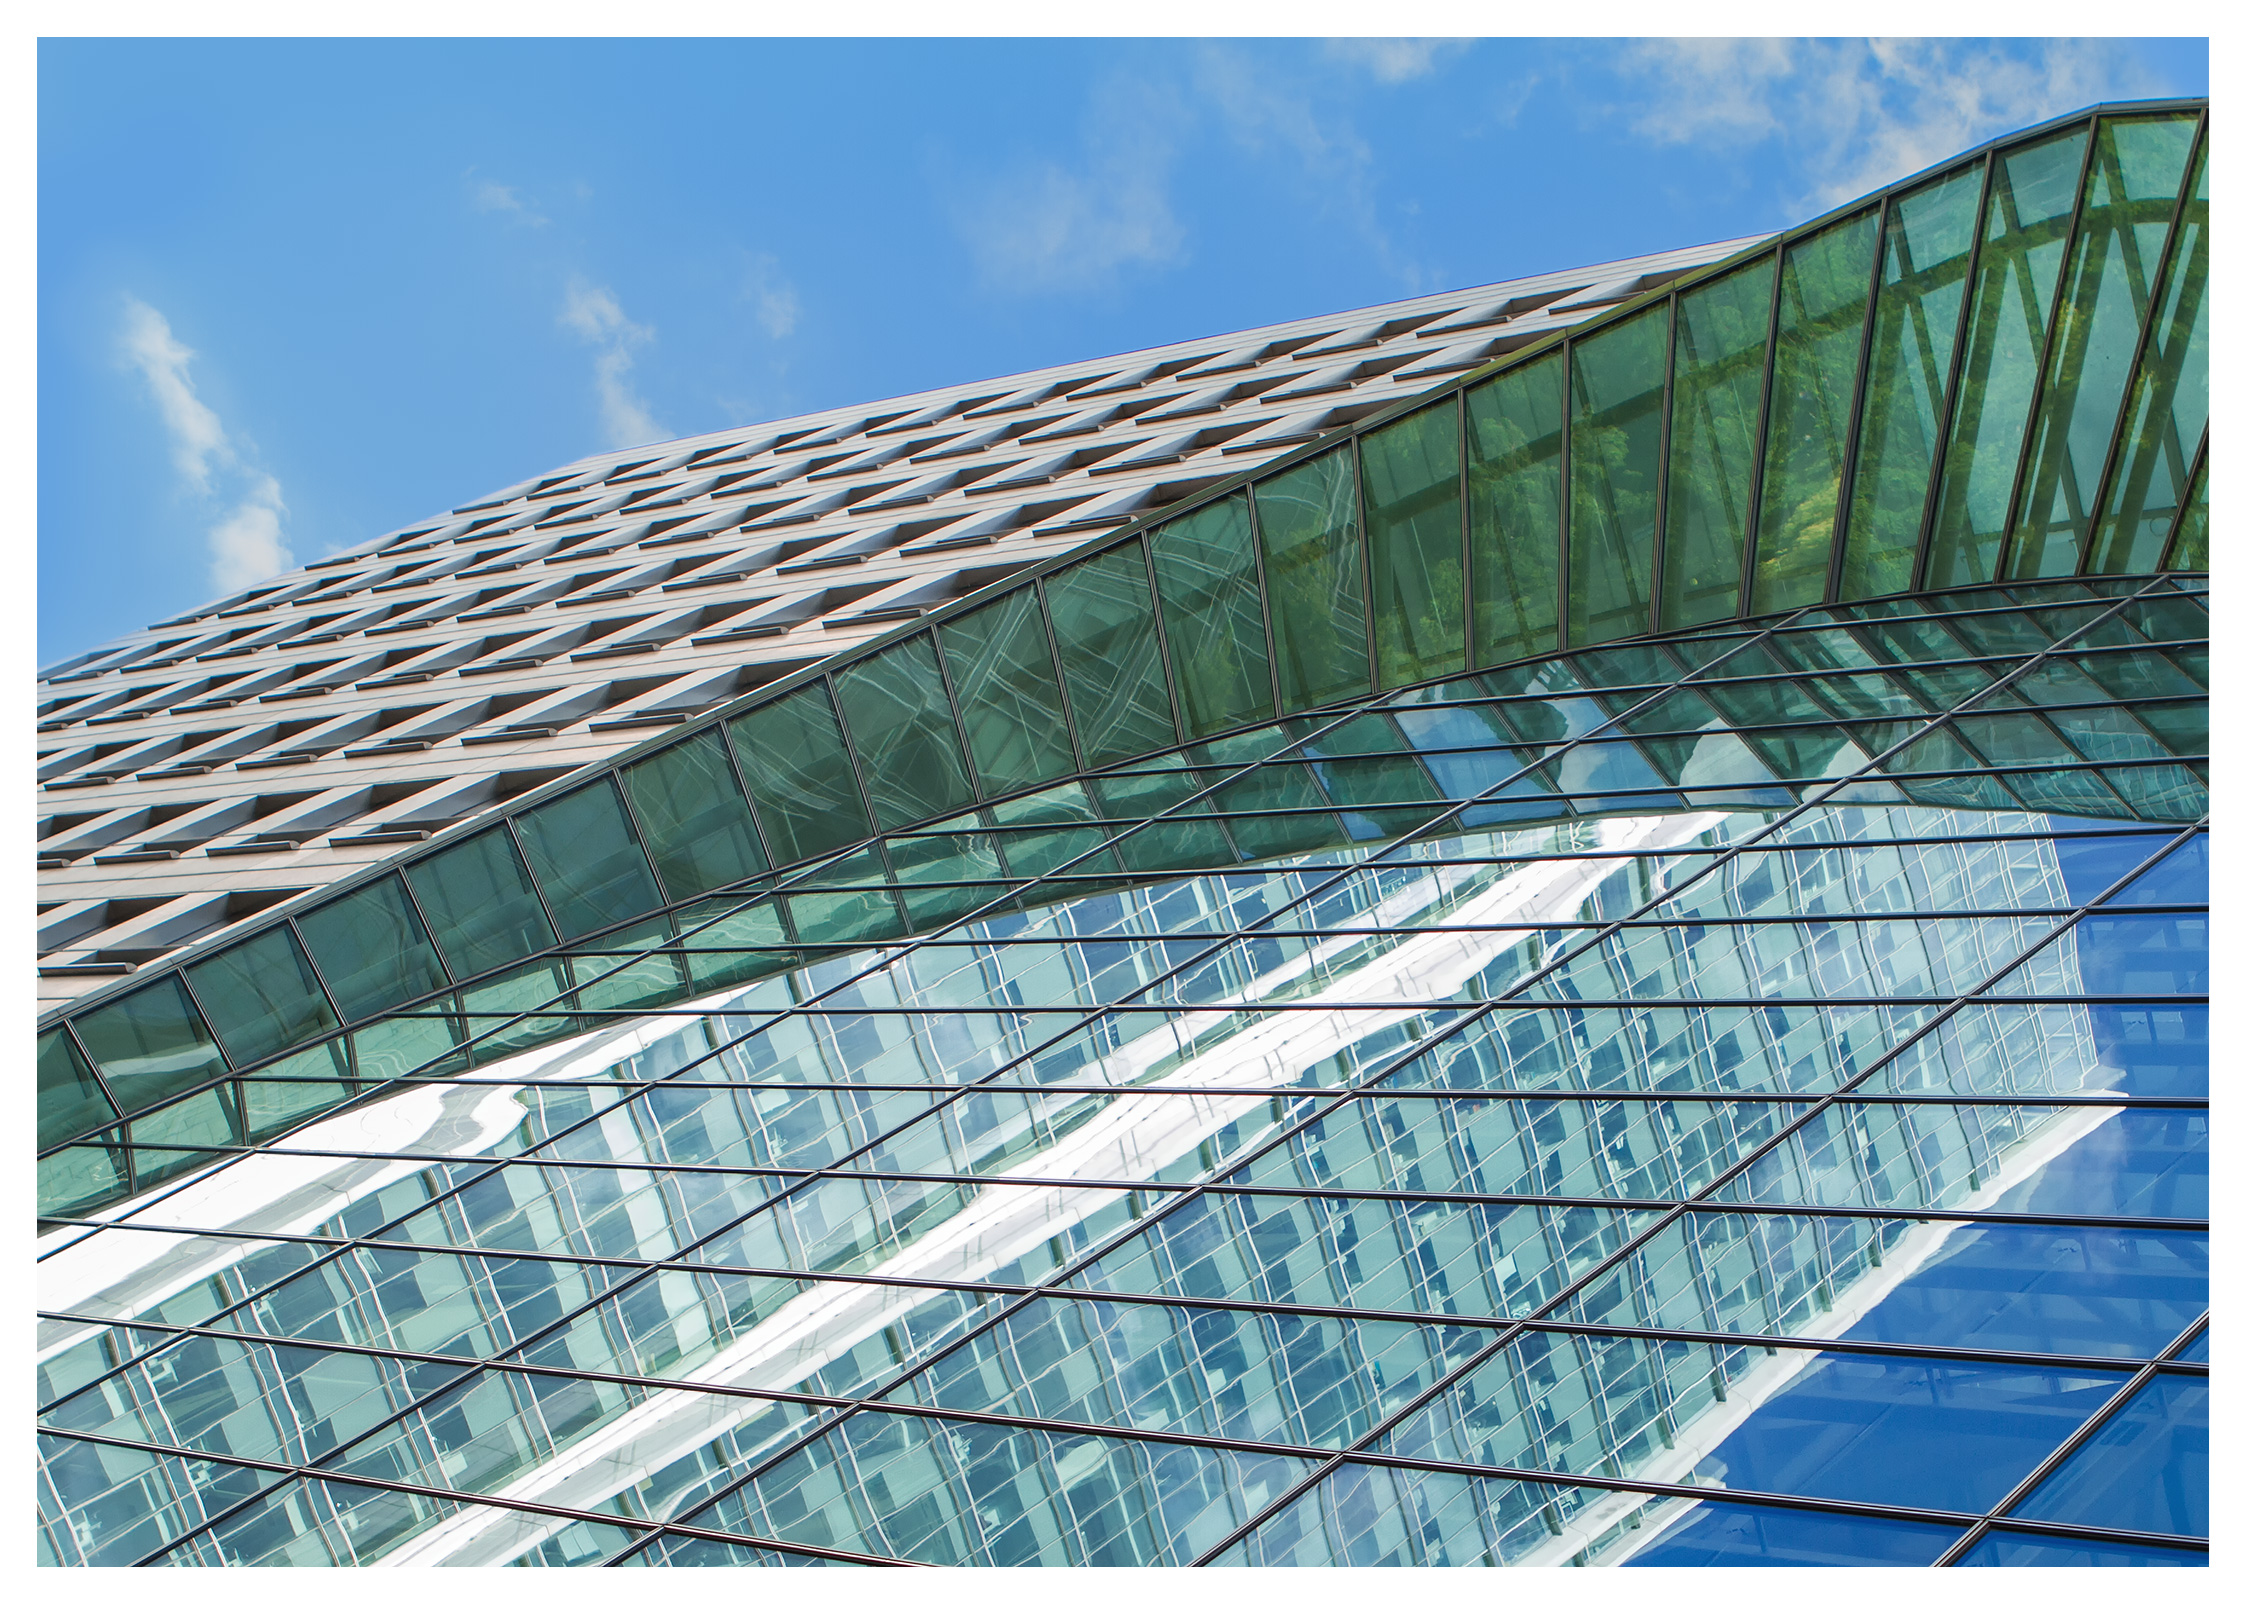 London Architecture, East Wintergarden, Bank Street, Canary Wharf, London